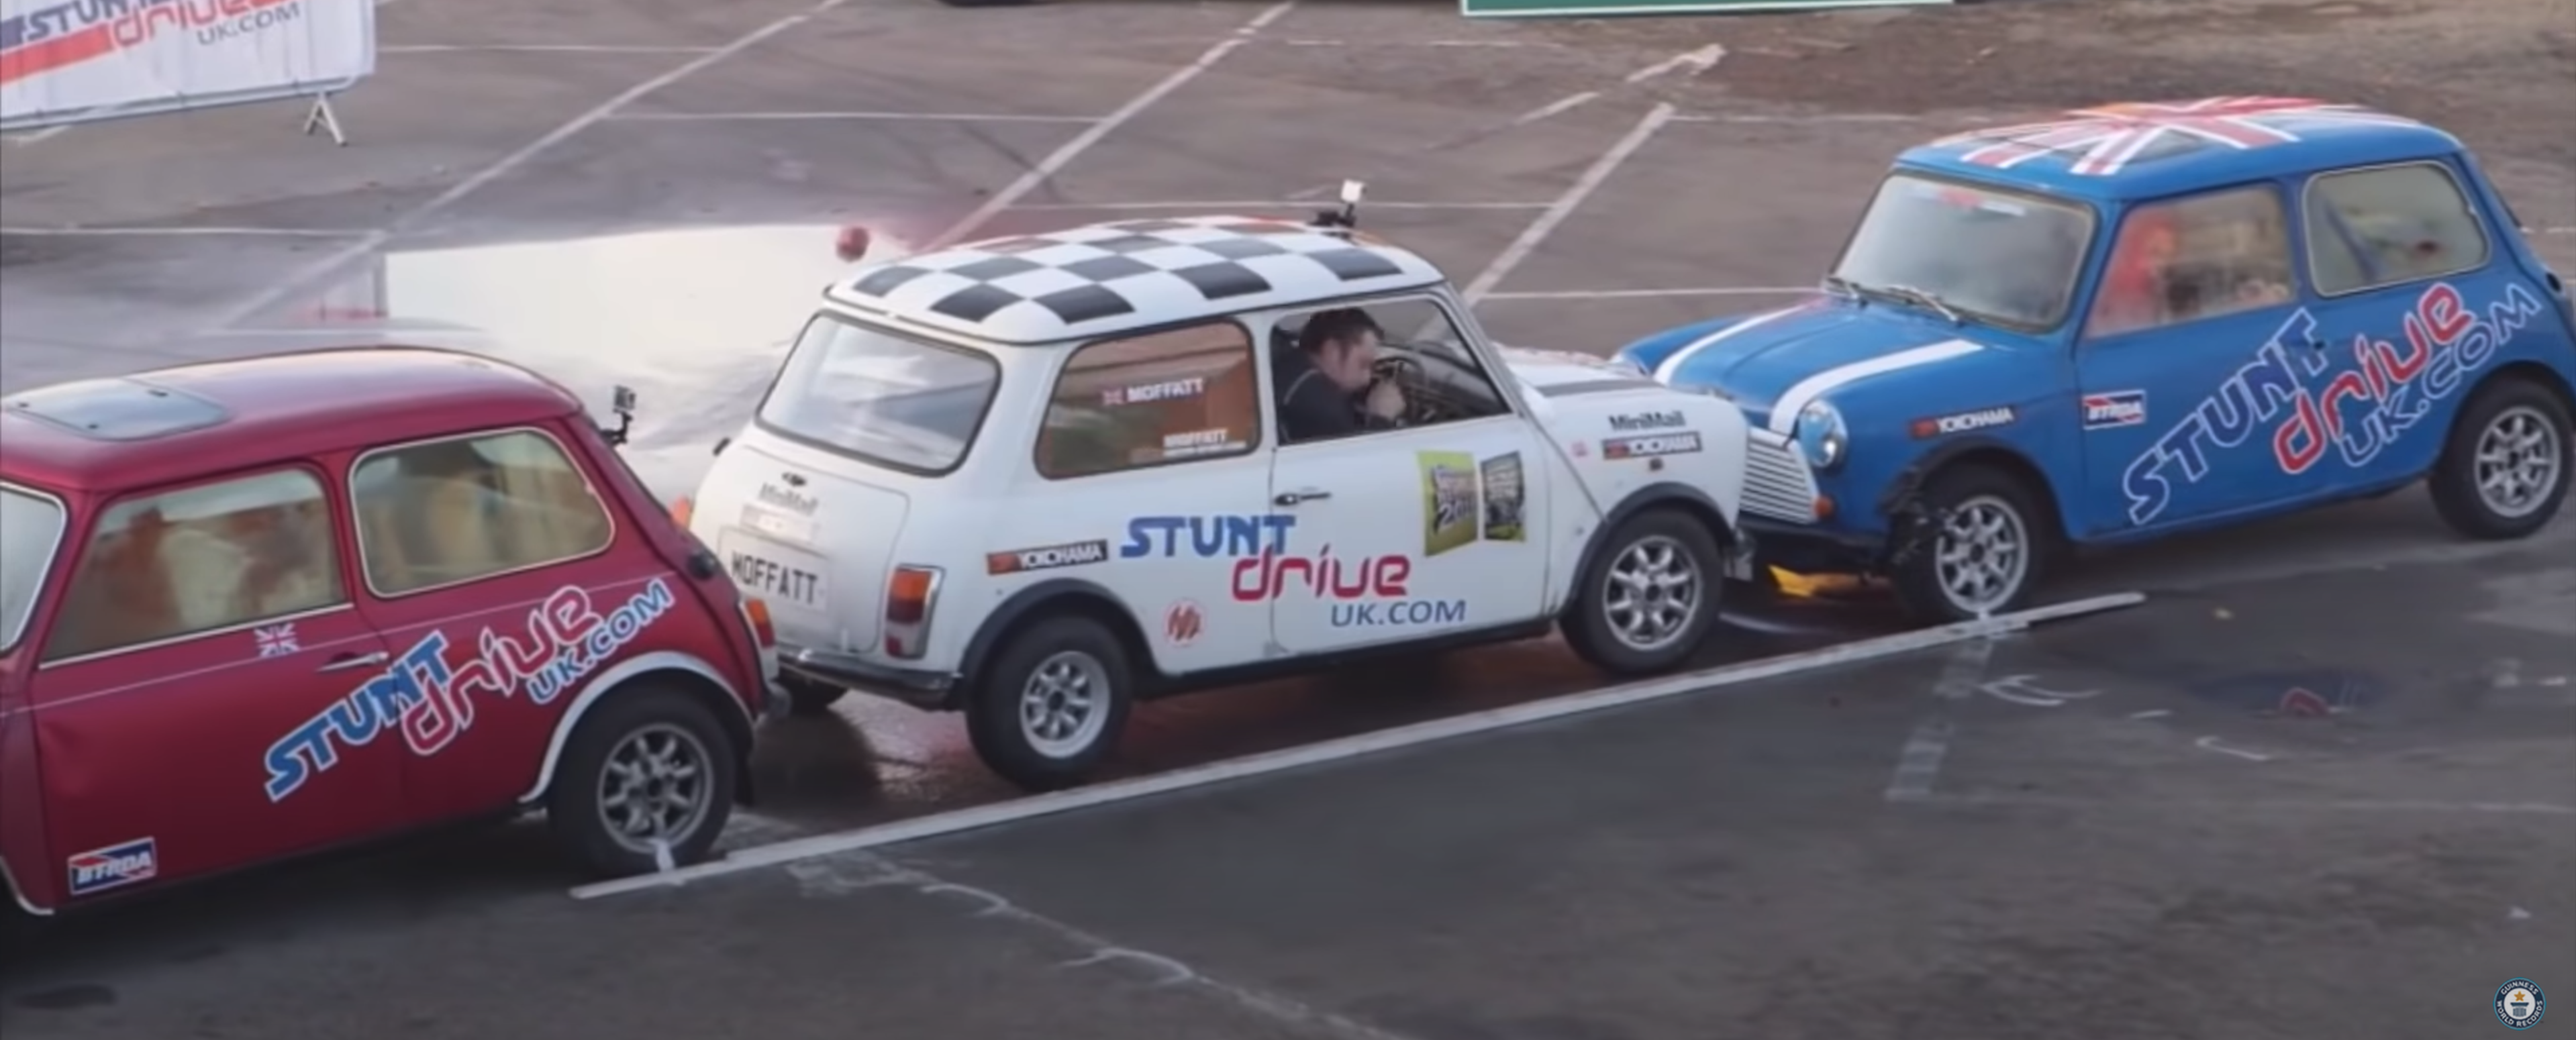 So you think you can parallel park? Watch this and think again